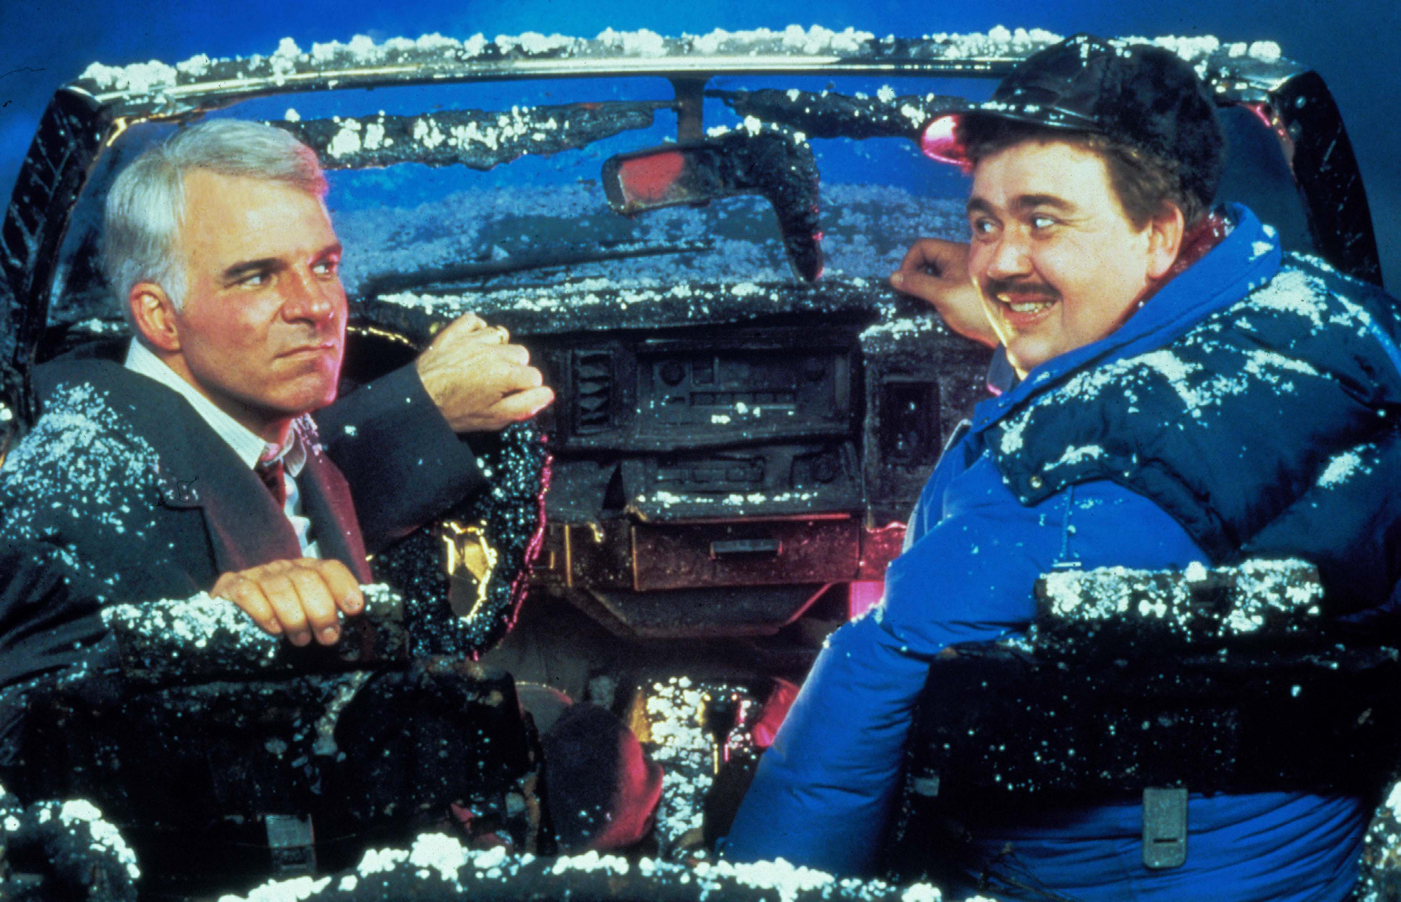 'Planes, Trains & Automobiles': Best Thanksgiving Movie